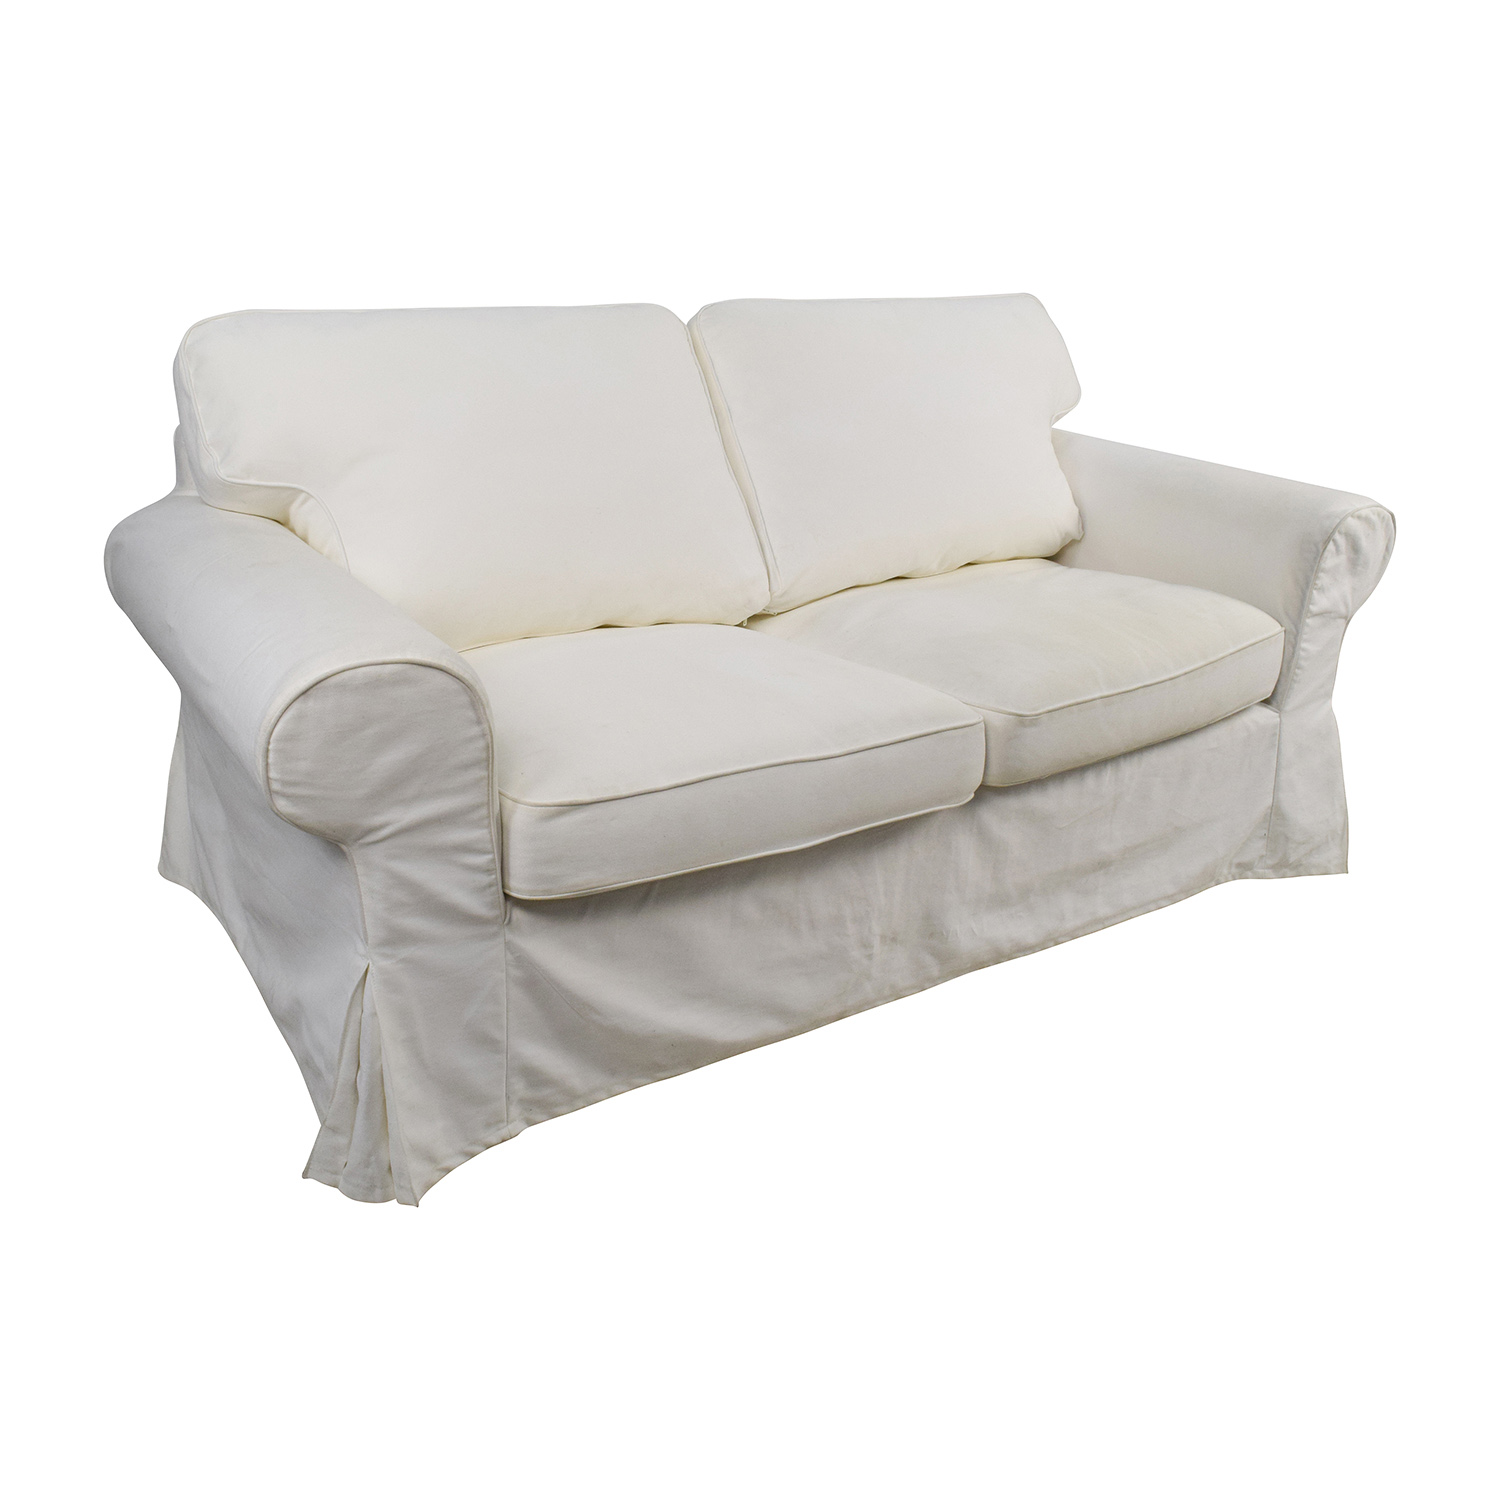 Ektorp Sofa Vittaryd White Ektorp Ikea Sofa Ektorp Blekinge White Sofa Google Search Family